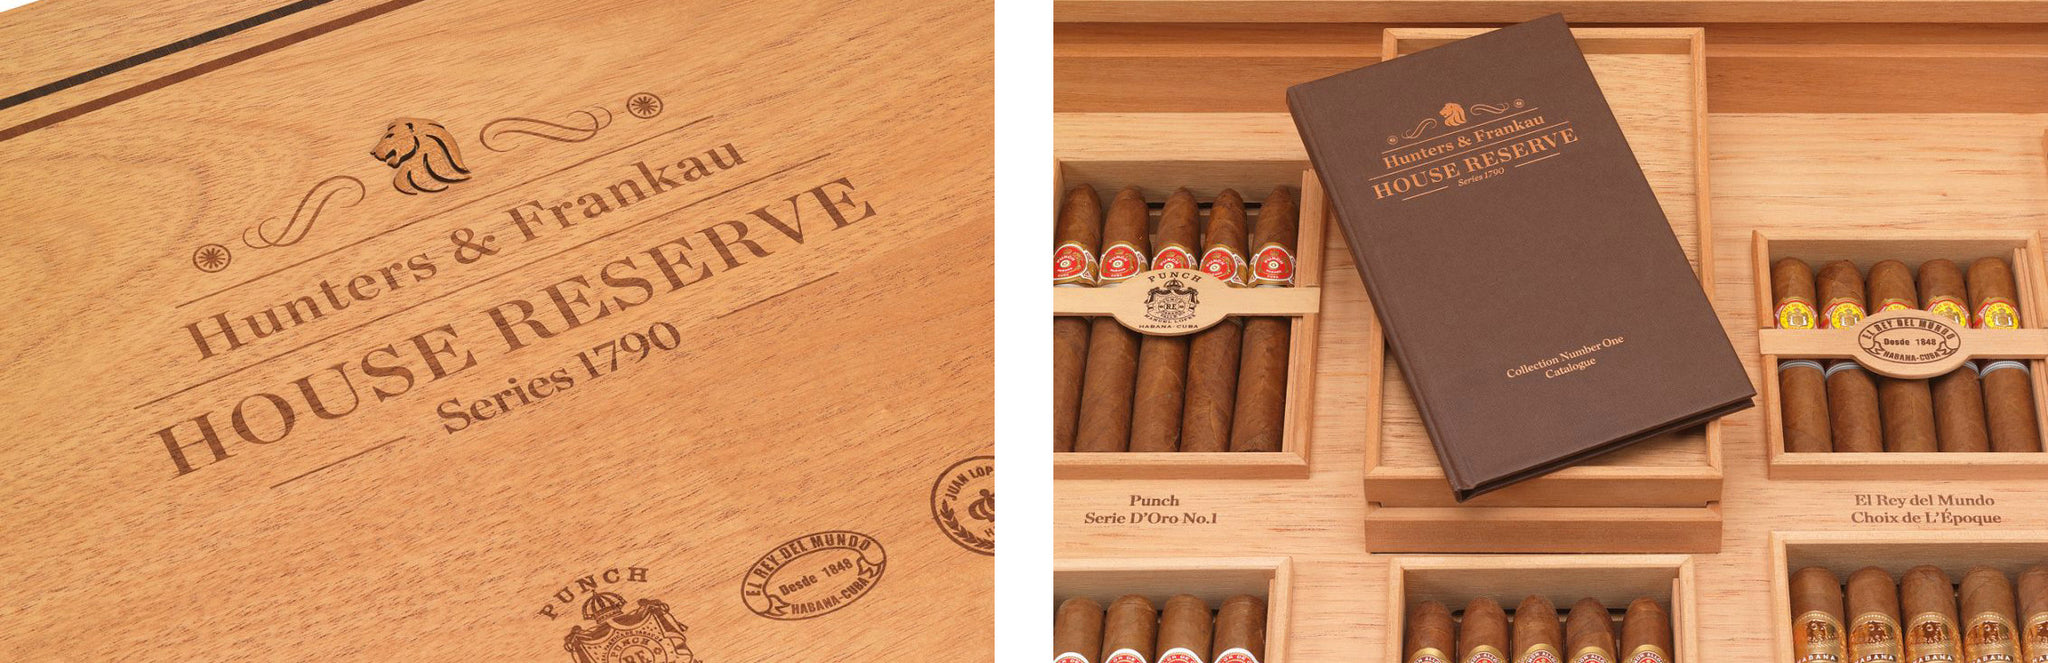 Hunters & Frankau Announces House Reserve Collectors Humidor egm cigars